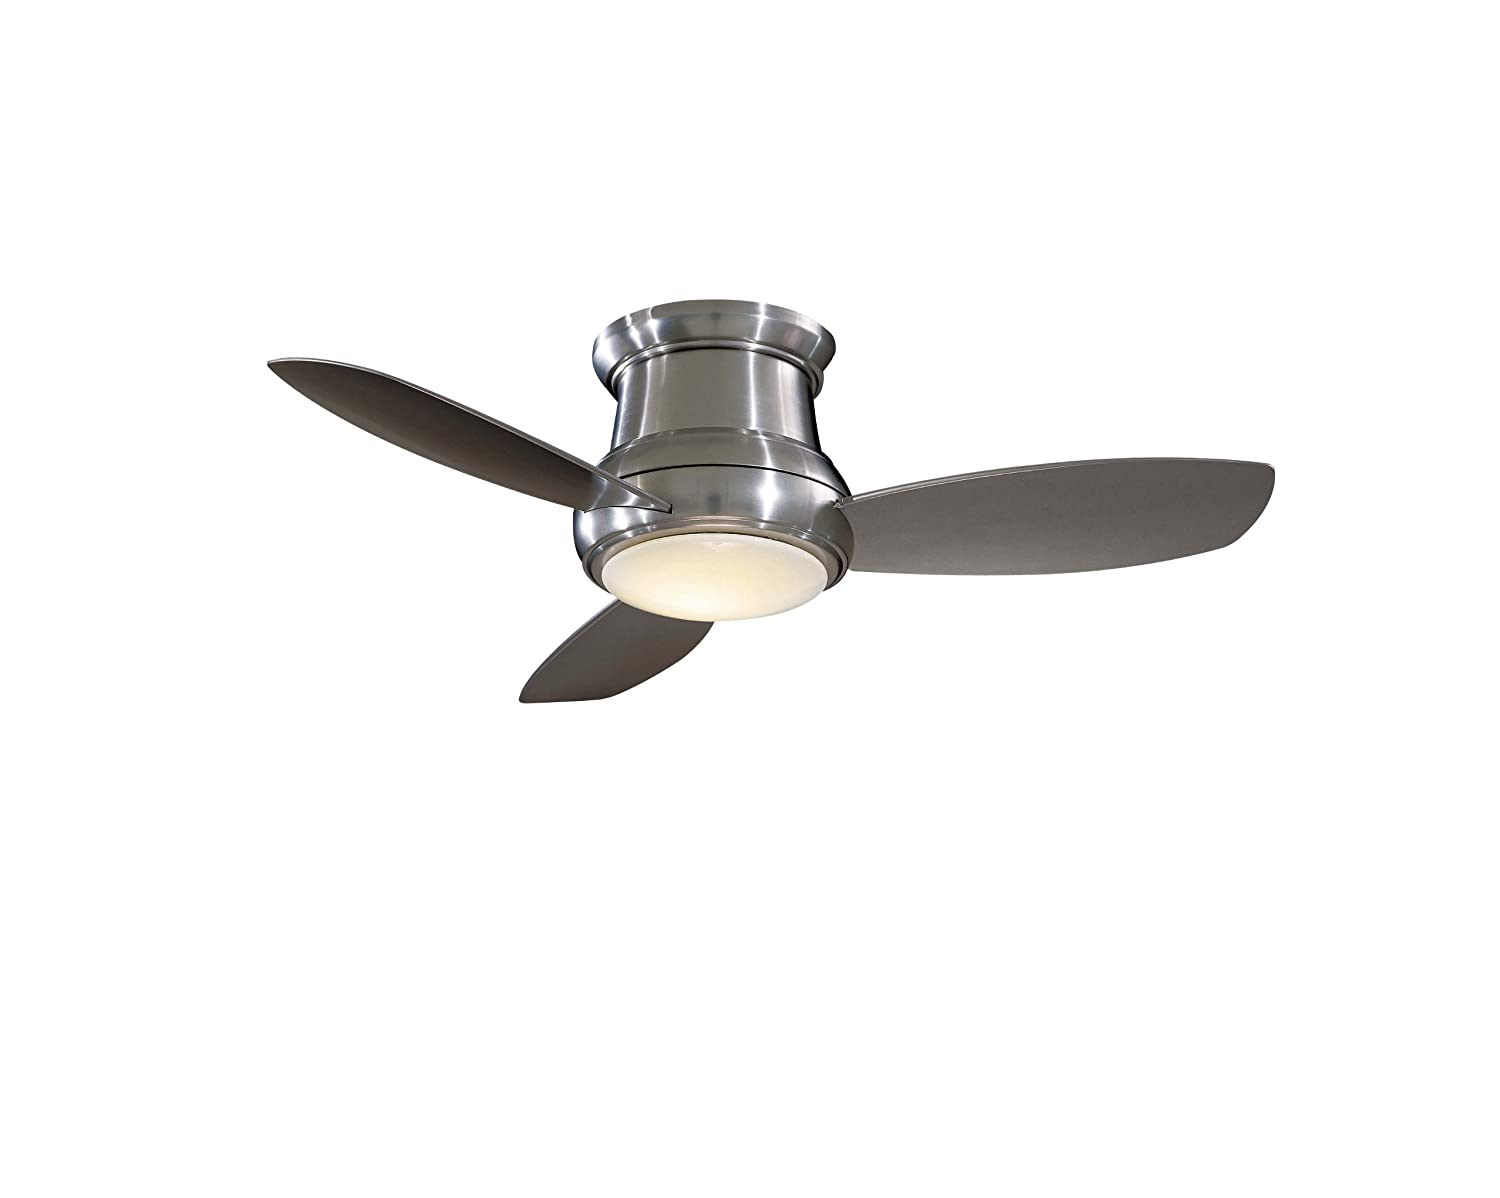 Minka aire f519 bn concept ii 52 ceiling fan brushed nickel minka aire f519 bn concept ii 52 ceiling fan brushed nickel amazon aloadofball Images